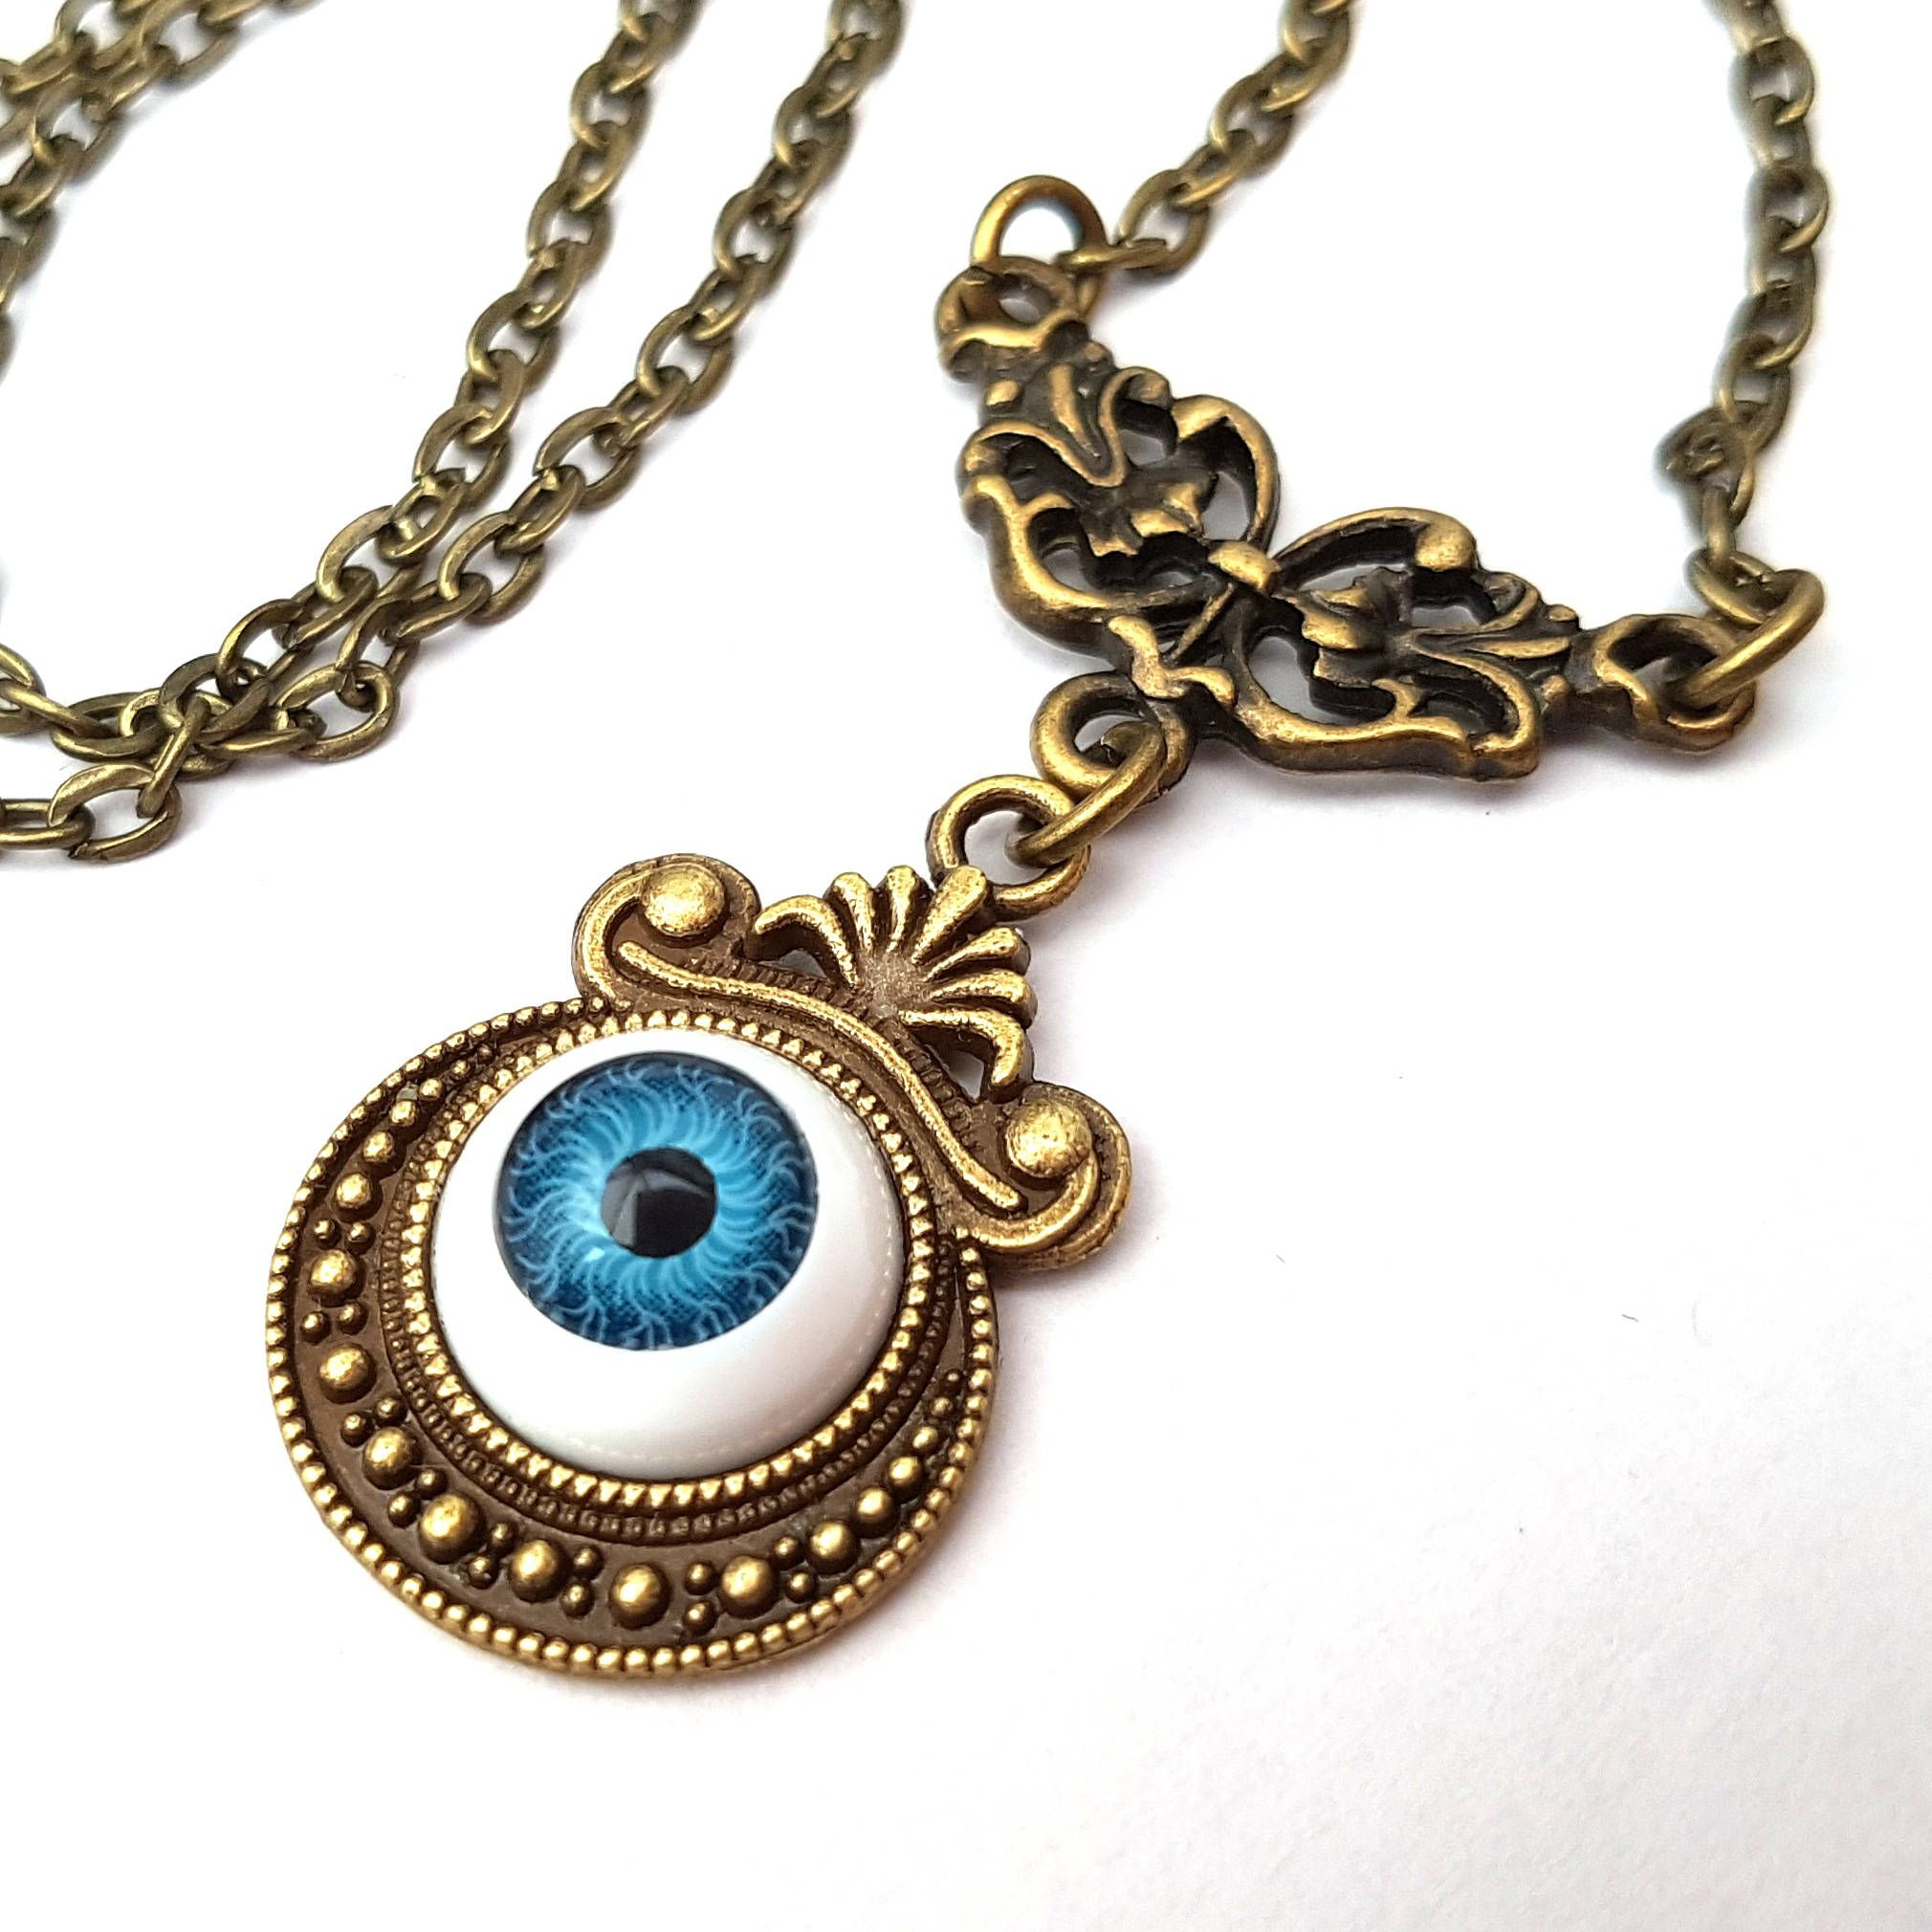 necklaces bl oz by abstract chokers flying brand blue tokyo en eye silver product pendants vertical information eyeball cat necklace catalogue